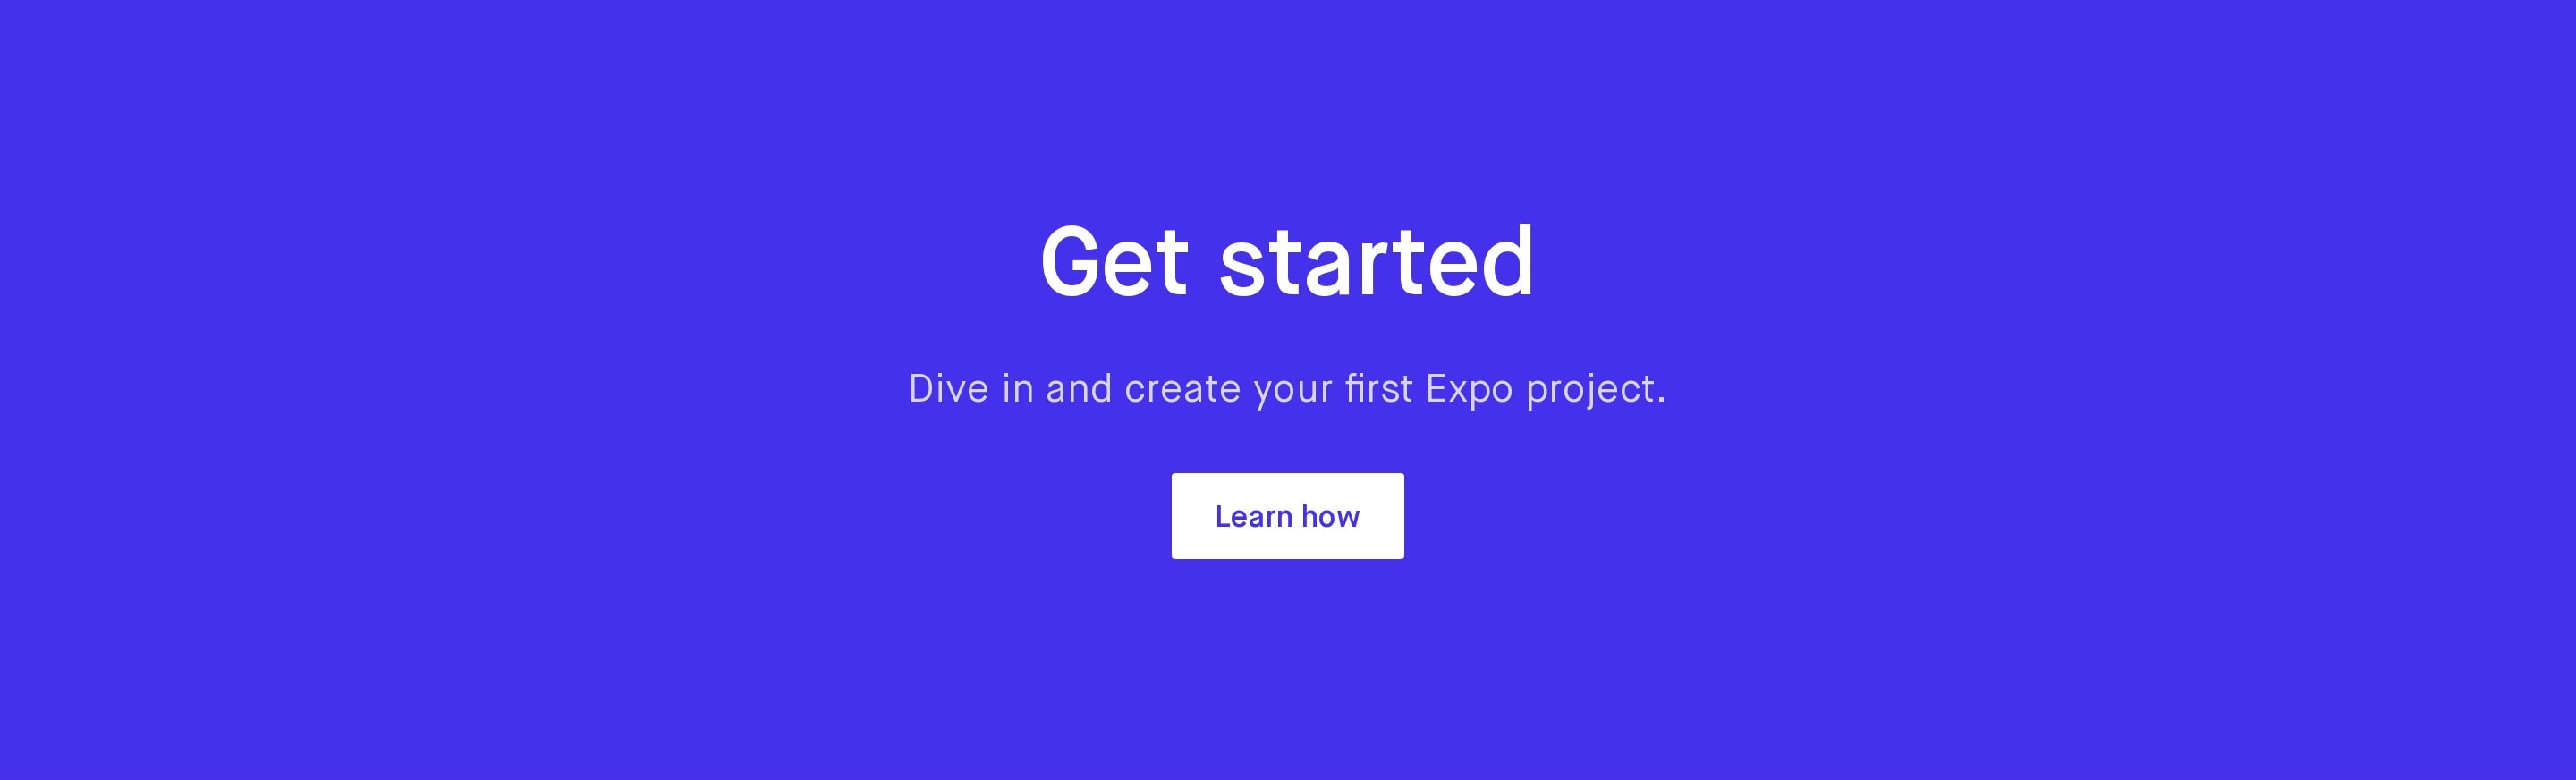 Get Started Section on Blue Background